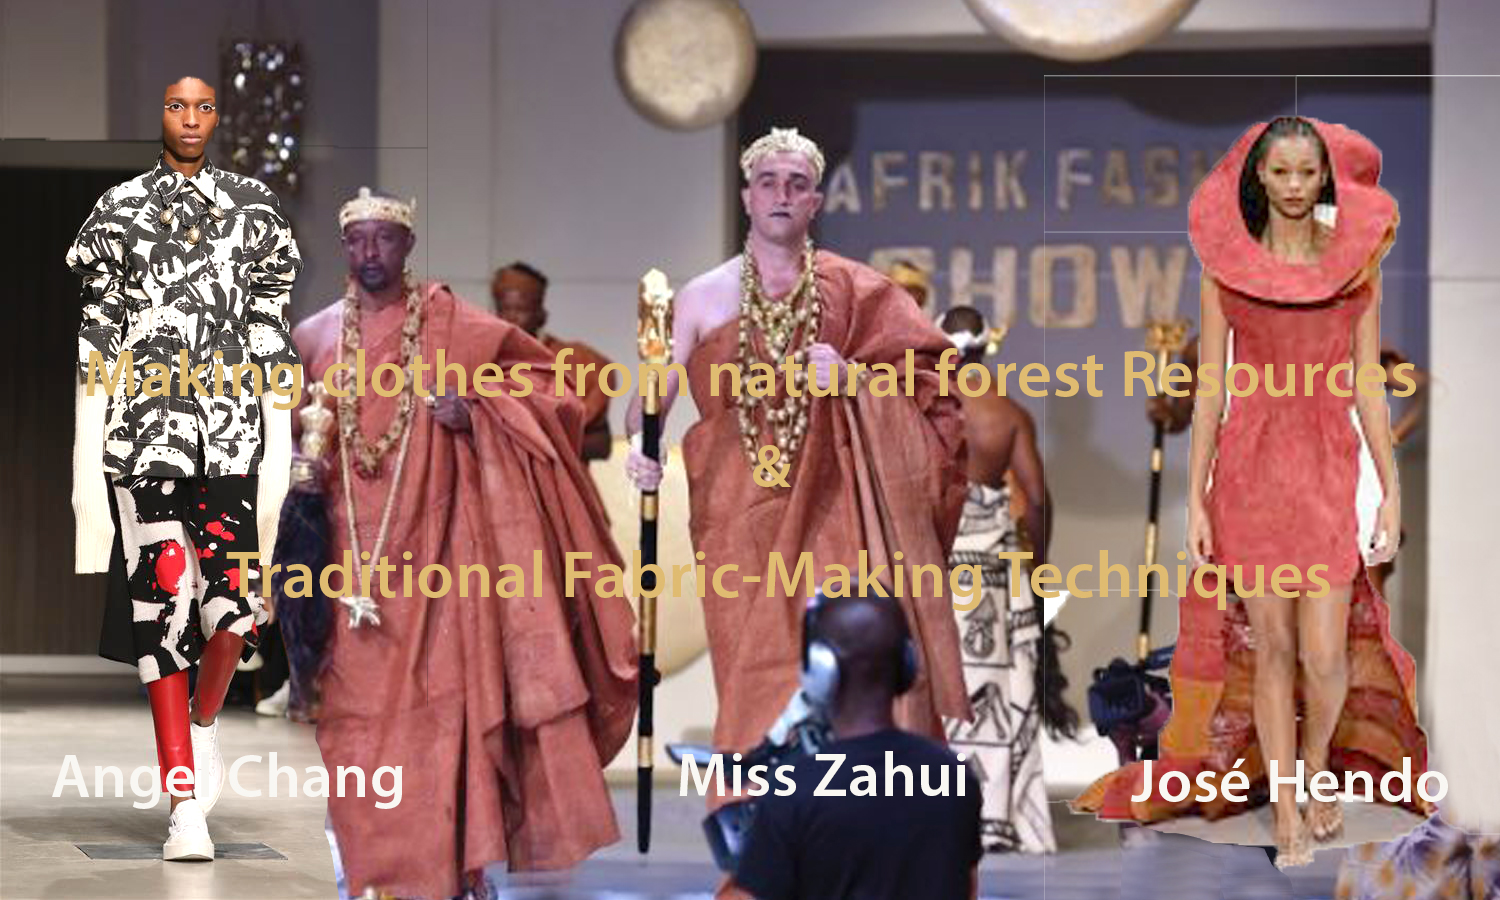 AFRICAN FASHION STYLE MAGAZINE - Making clothes from natural forest resources & traditional fabric-making techniques -Angel Chang - Miss ZAHUI - Make Tree bark cloth with Abachi Tree - Jose-Hendo made Mutuba Desig - Photographer DAN NGU - Media Partner DN AFRICA - STUDIO 24 NIGERIA - STUDIO 24 INTERNATIONAL - Ifeanyi Christopher Oputa MD AND CEO OF COLVI LIMITED AND STUDIO 24 - CHEVEUX CHERIE and CHEVEUX CHERIE STUDIO BY MARIEME DUBOZ- Fashion Editor Nahomie NOOR COULIBALY